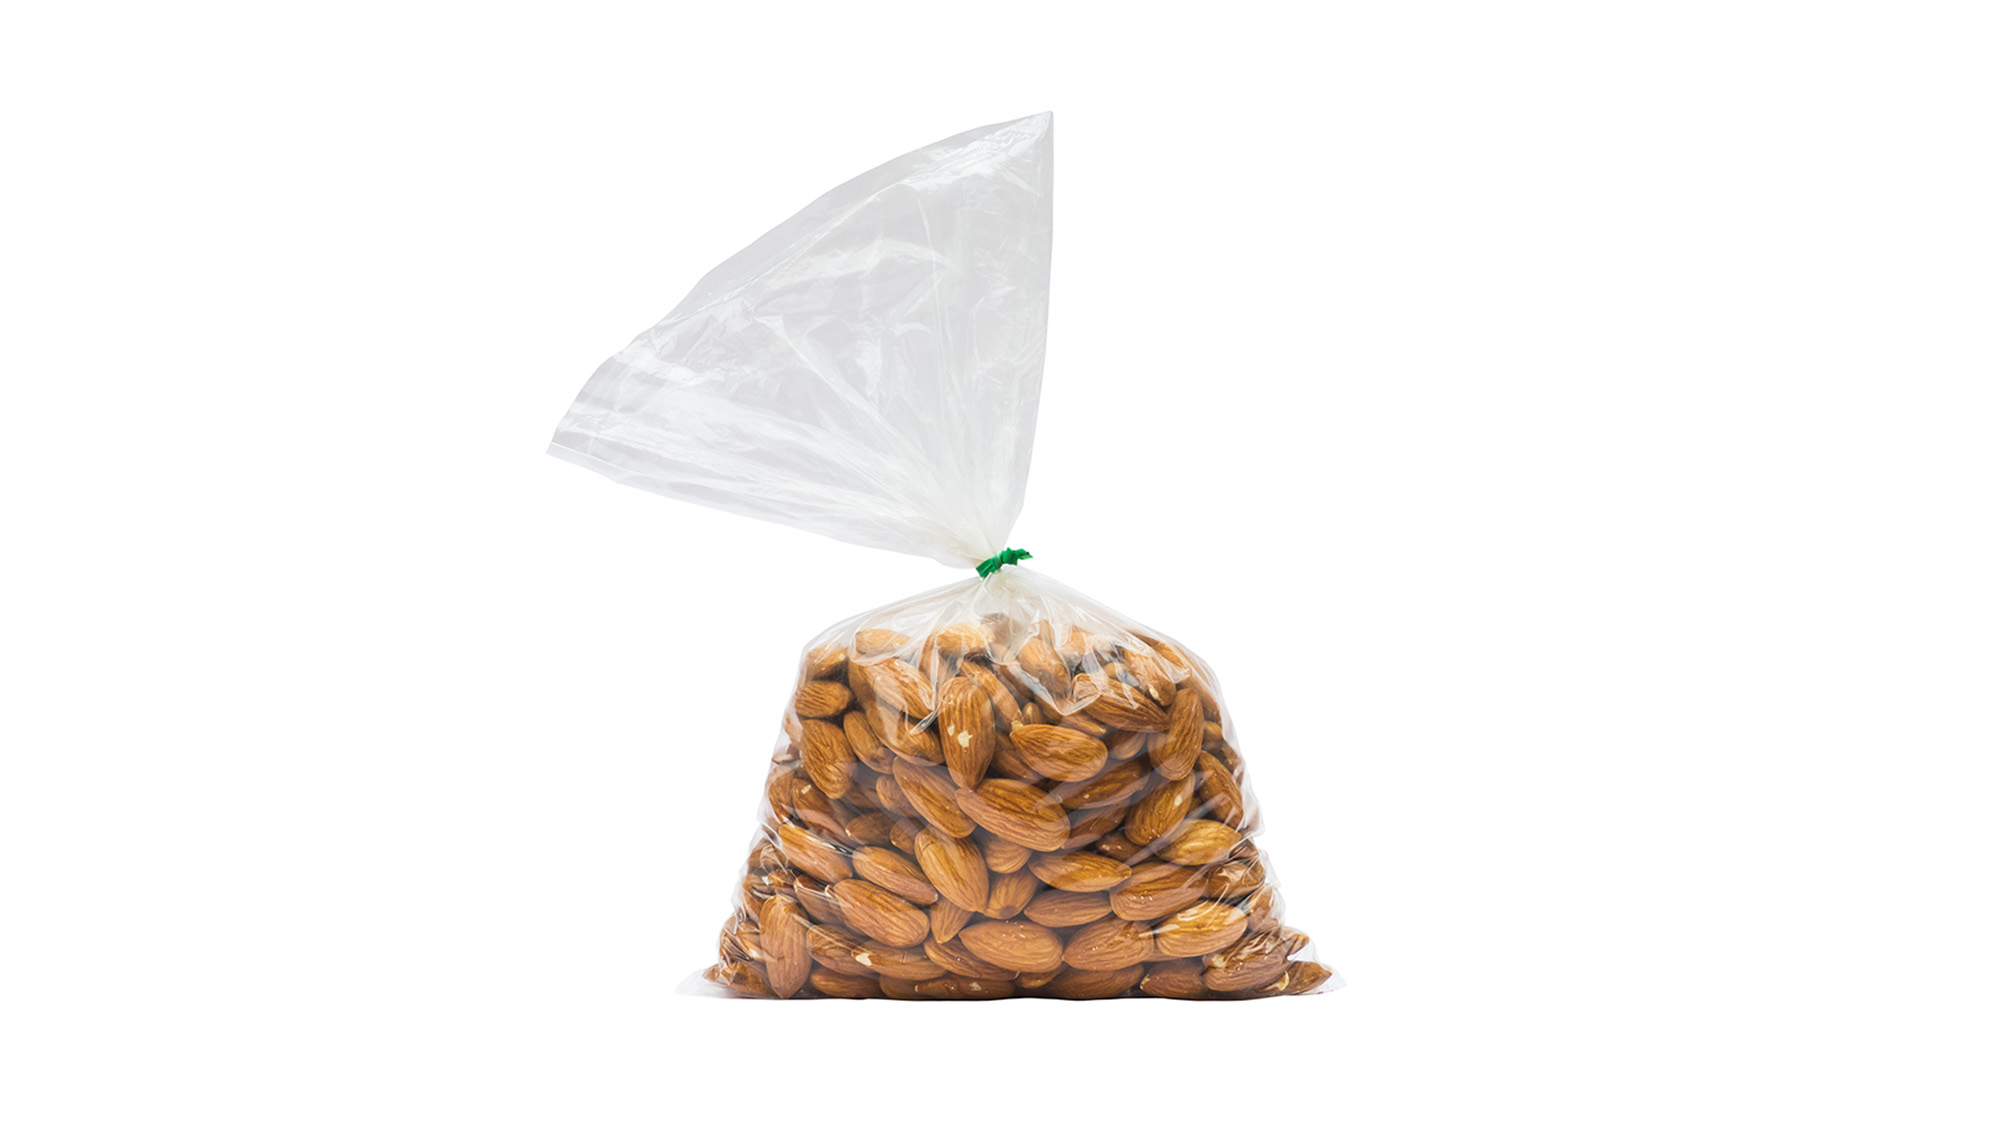 4200020 Flat bags for storage and freezing of foods